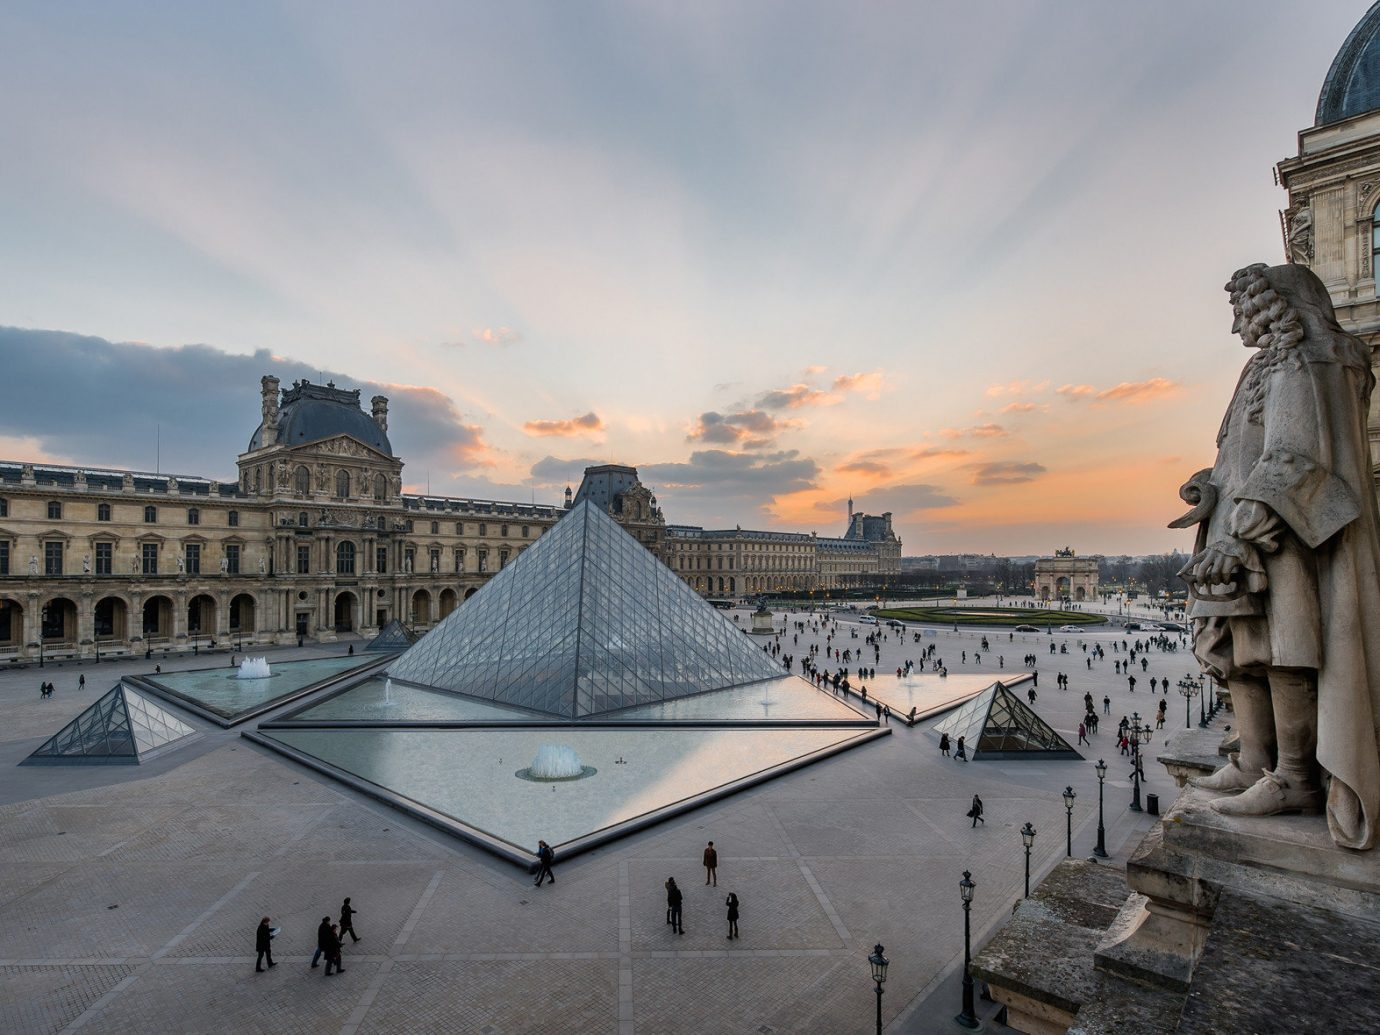 Exterior of Musee du Louvre in Paris France